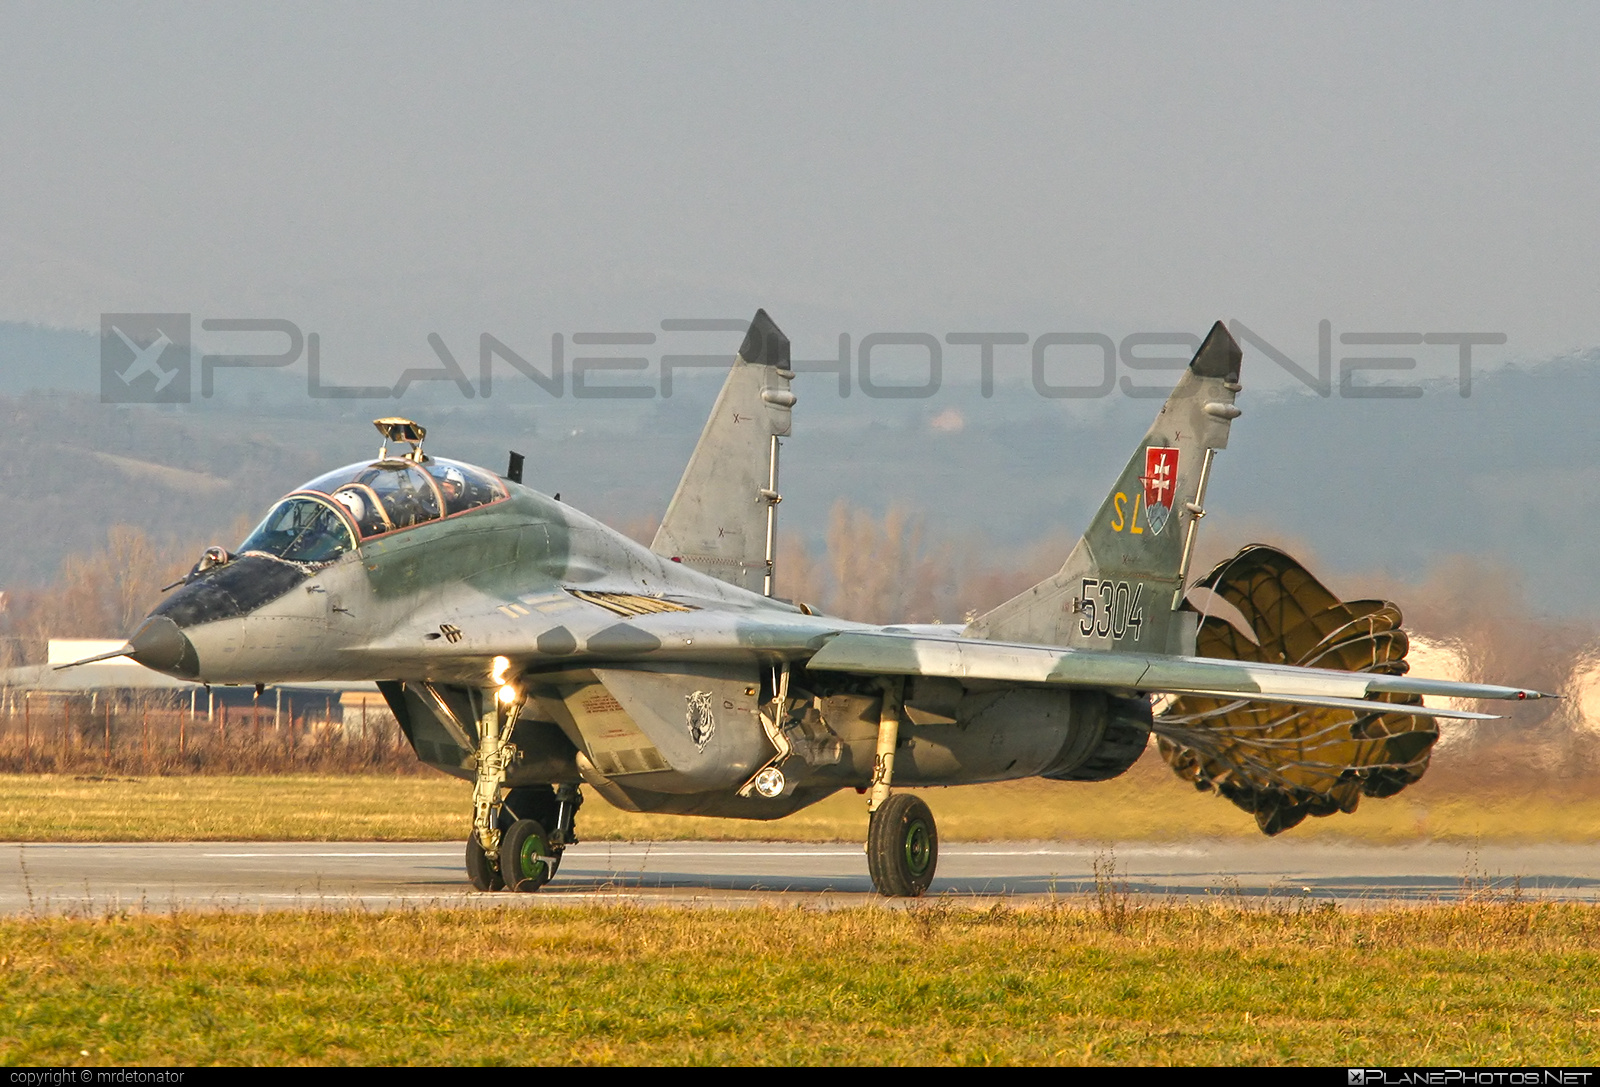 Mikoyan-Gurevich MiG-29UBS - 5304 operated by Vzdušné sily OS SR (Slovak Air Force) #mig #mig29 #mig29ubs #mikoyangurevich #slovakairforce #vzdusnesilyossr